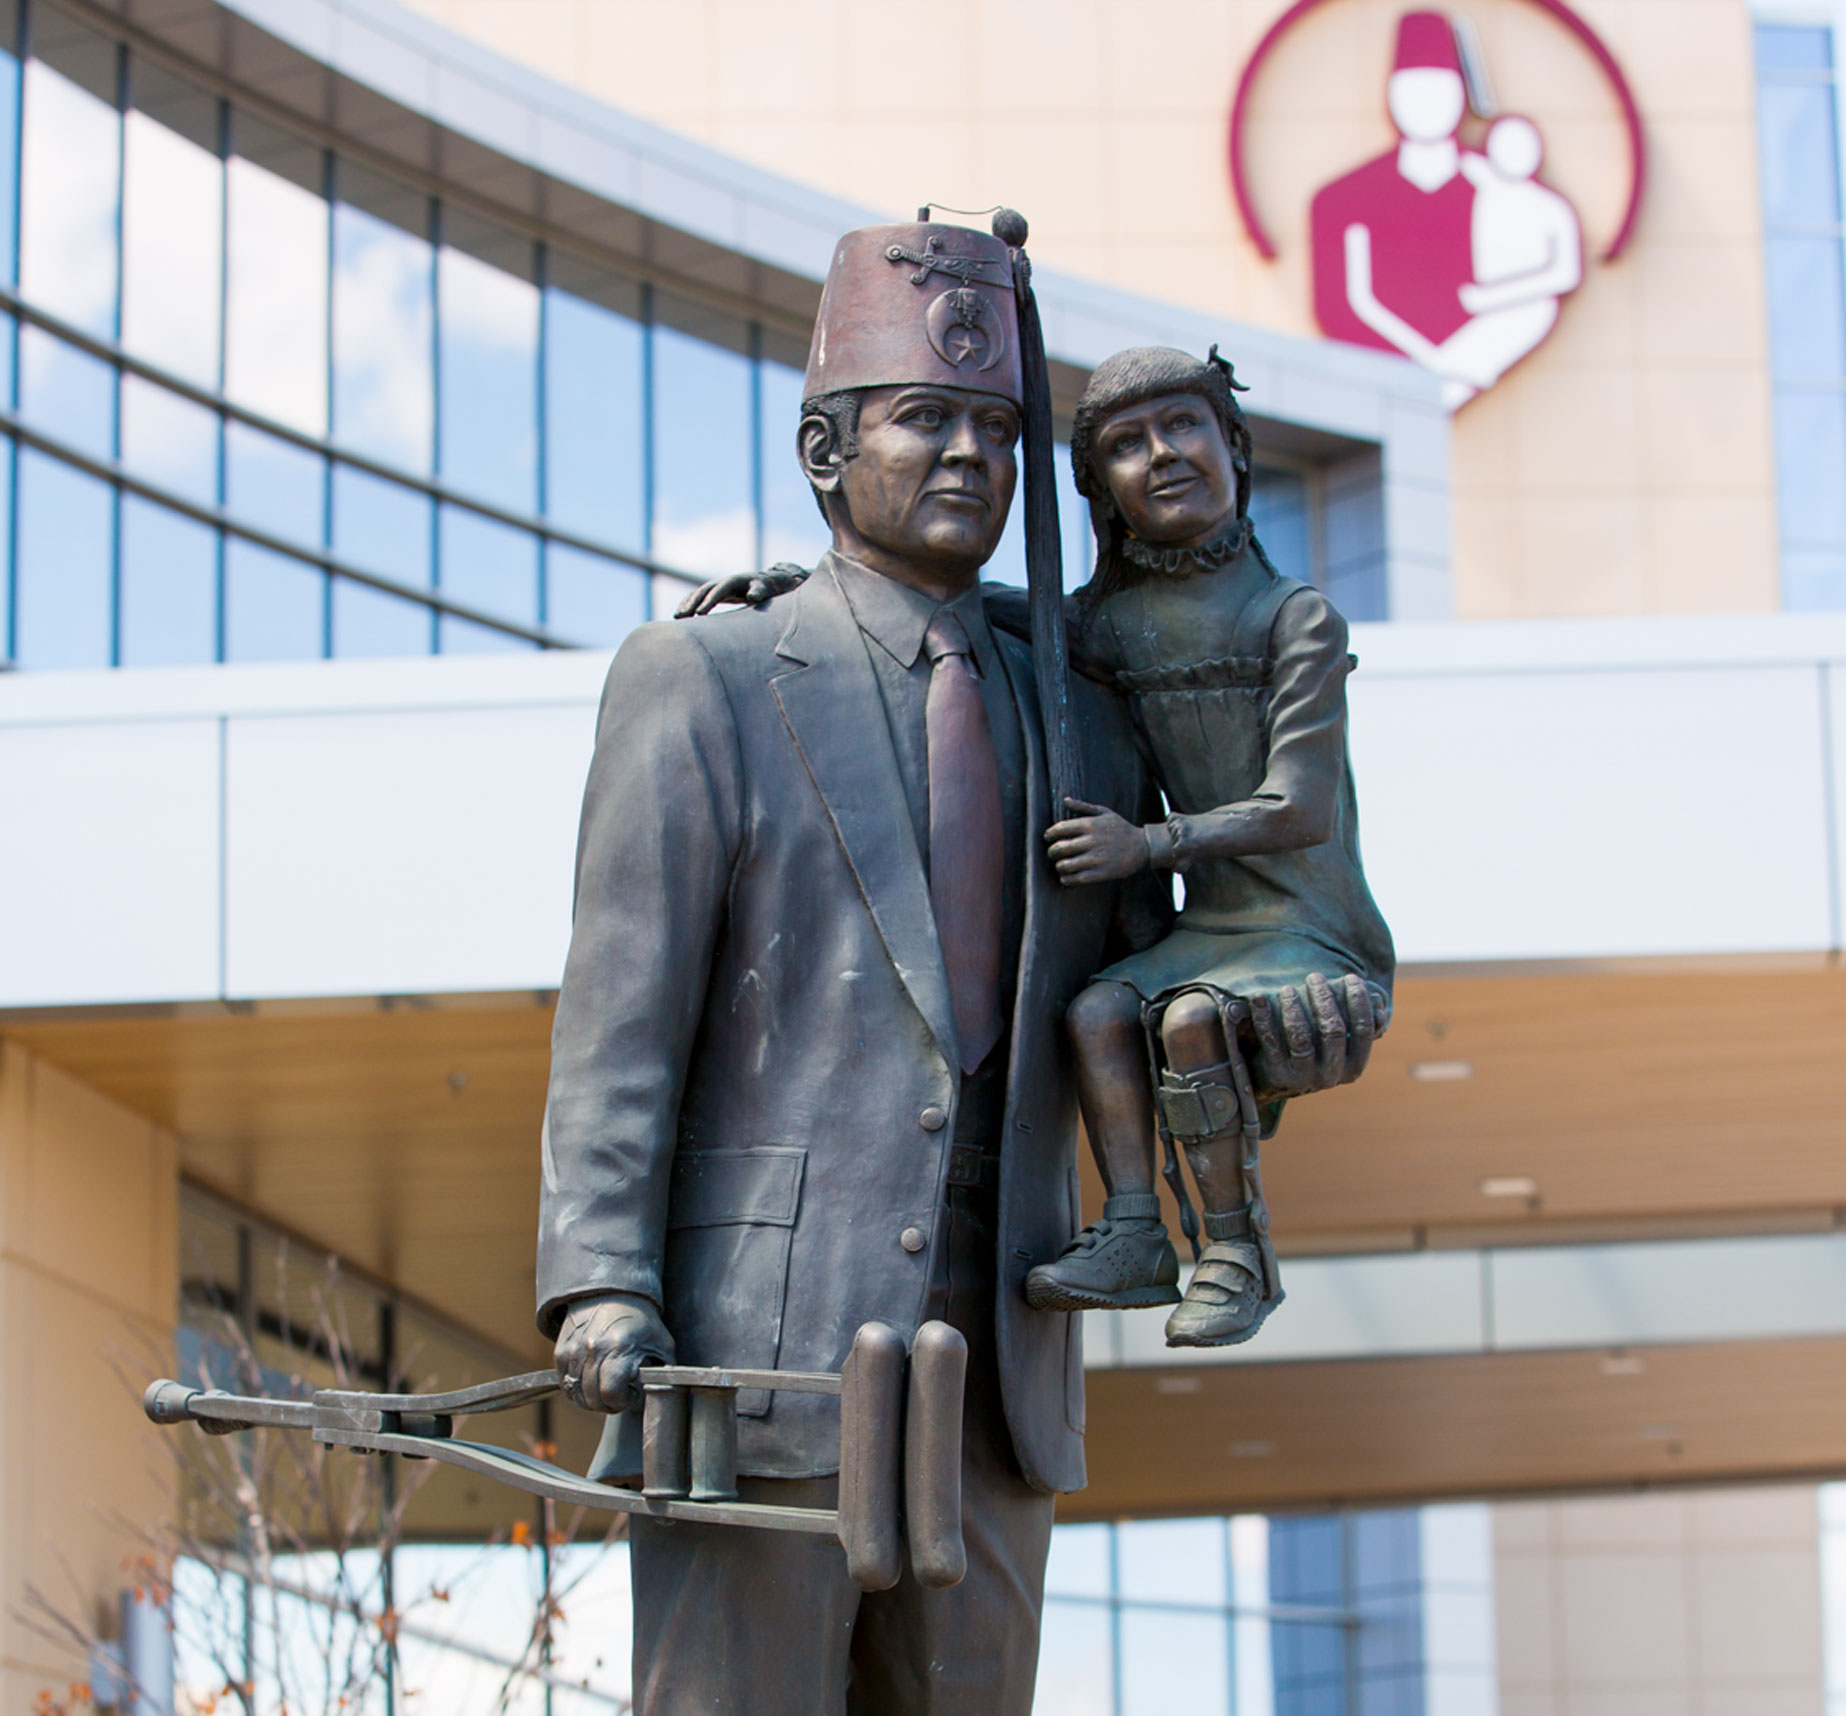 Shriners Hospitals for Children - About